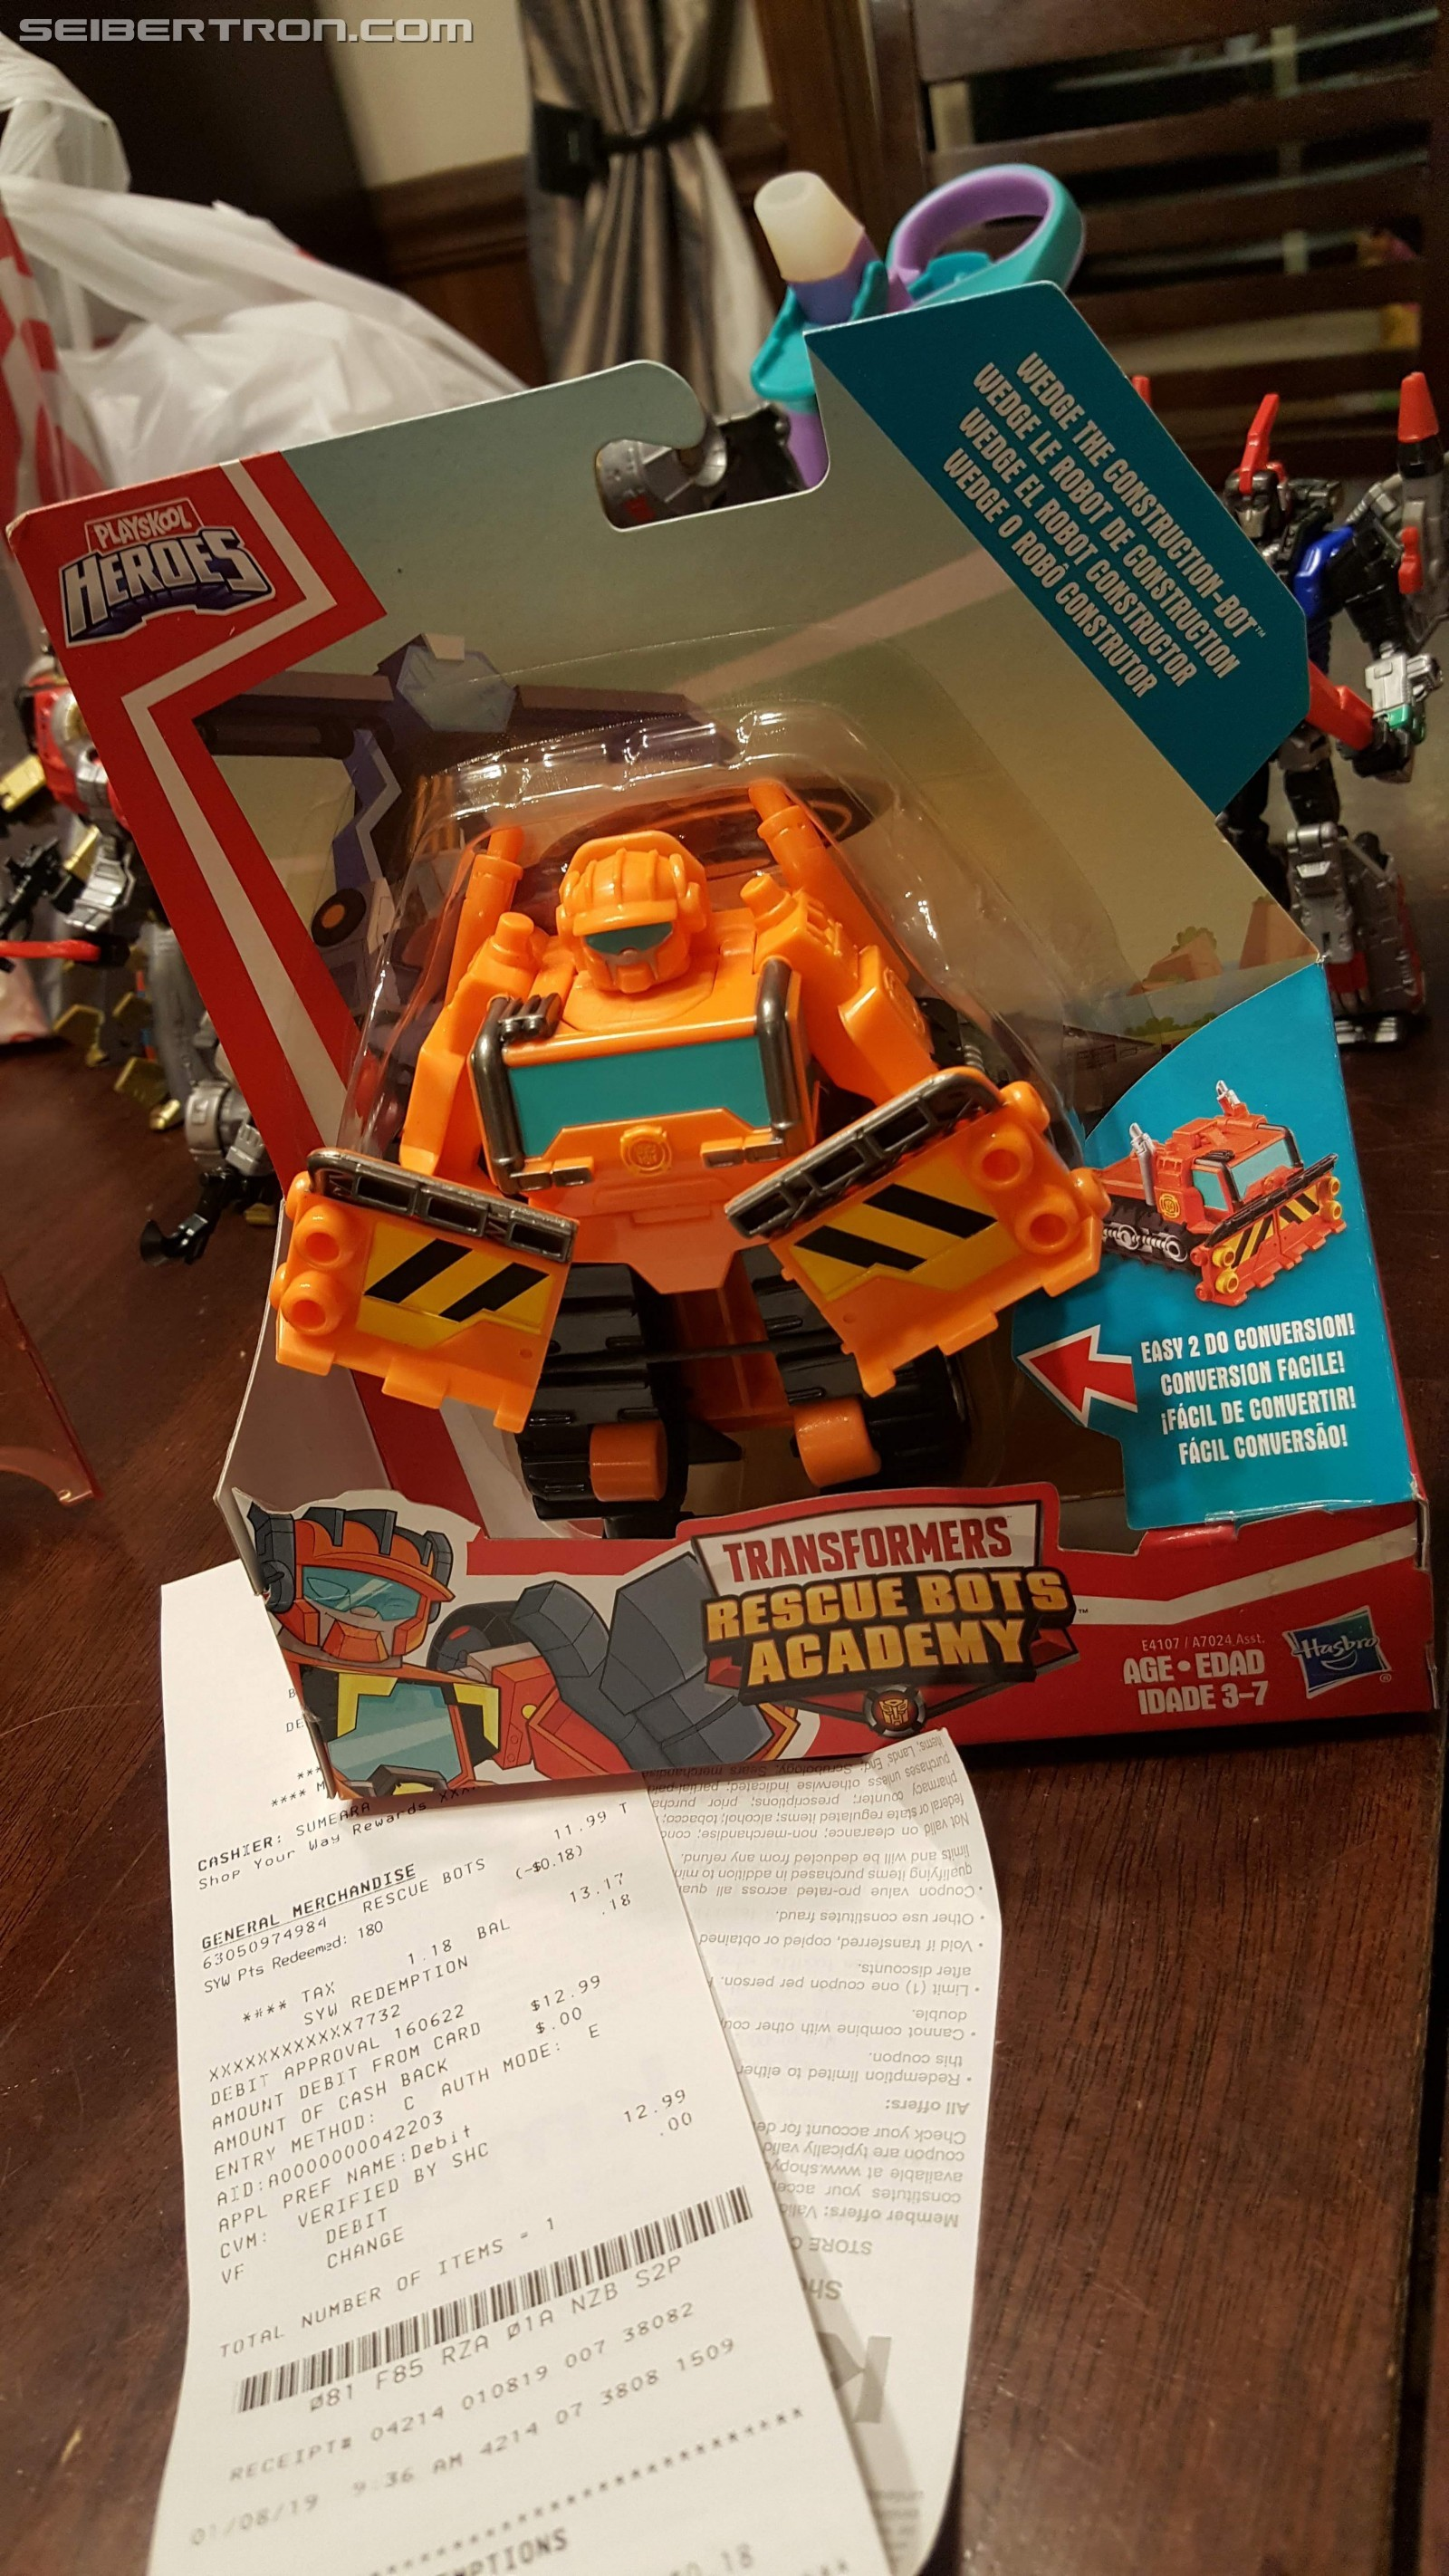 Transformers News: New Rescue Bots Academy figures found at retail